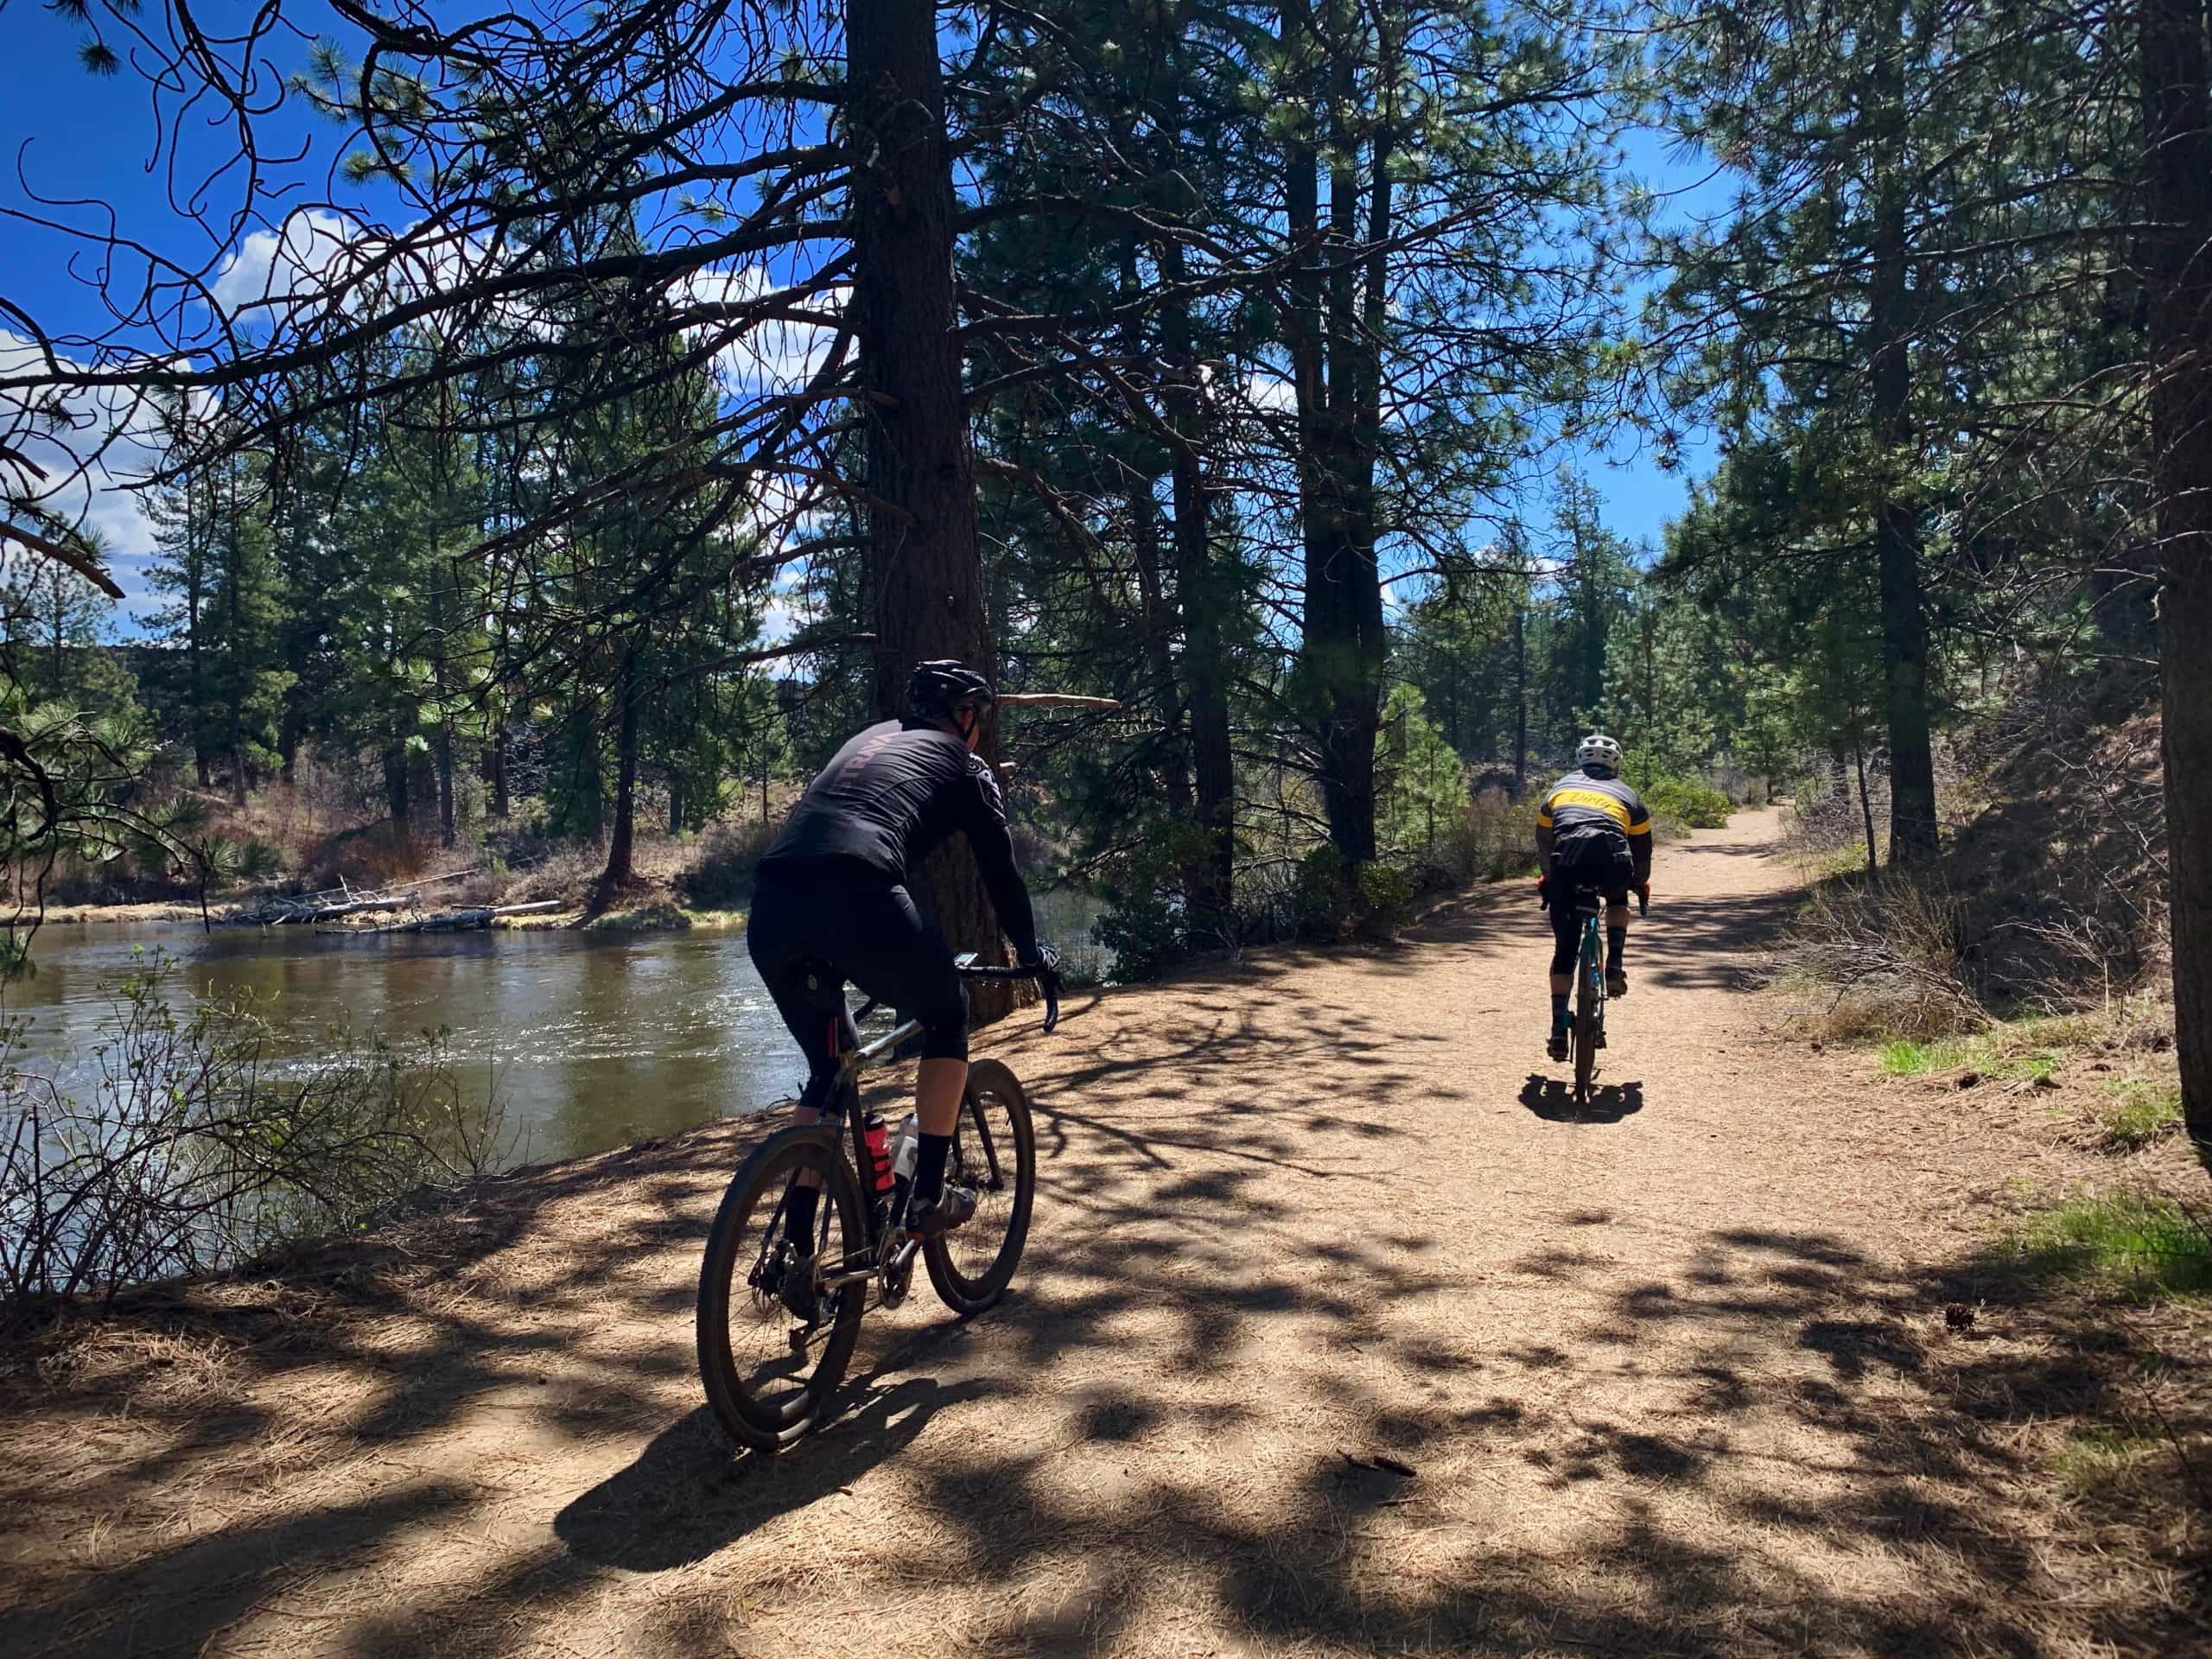 Two cyclists on dirt path between Benham Falls and the wooden bridge over the Deschutes River.